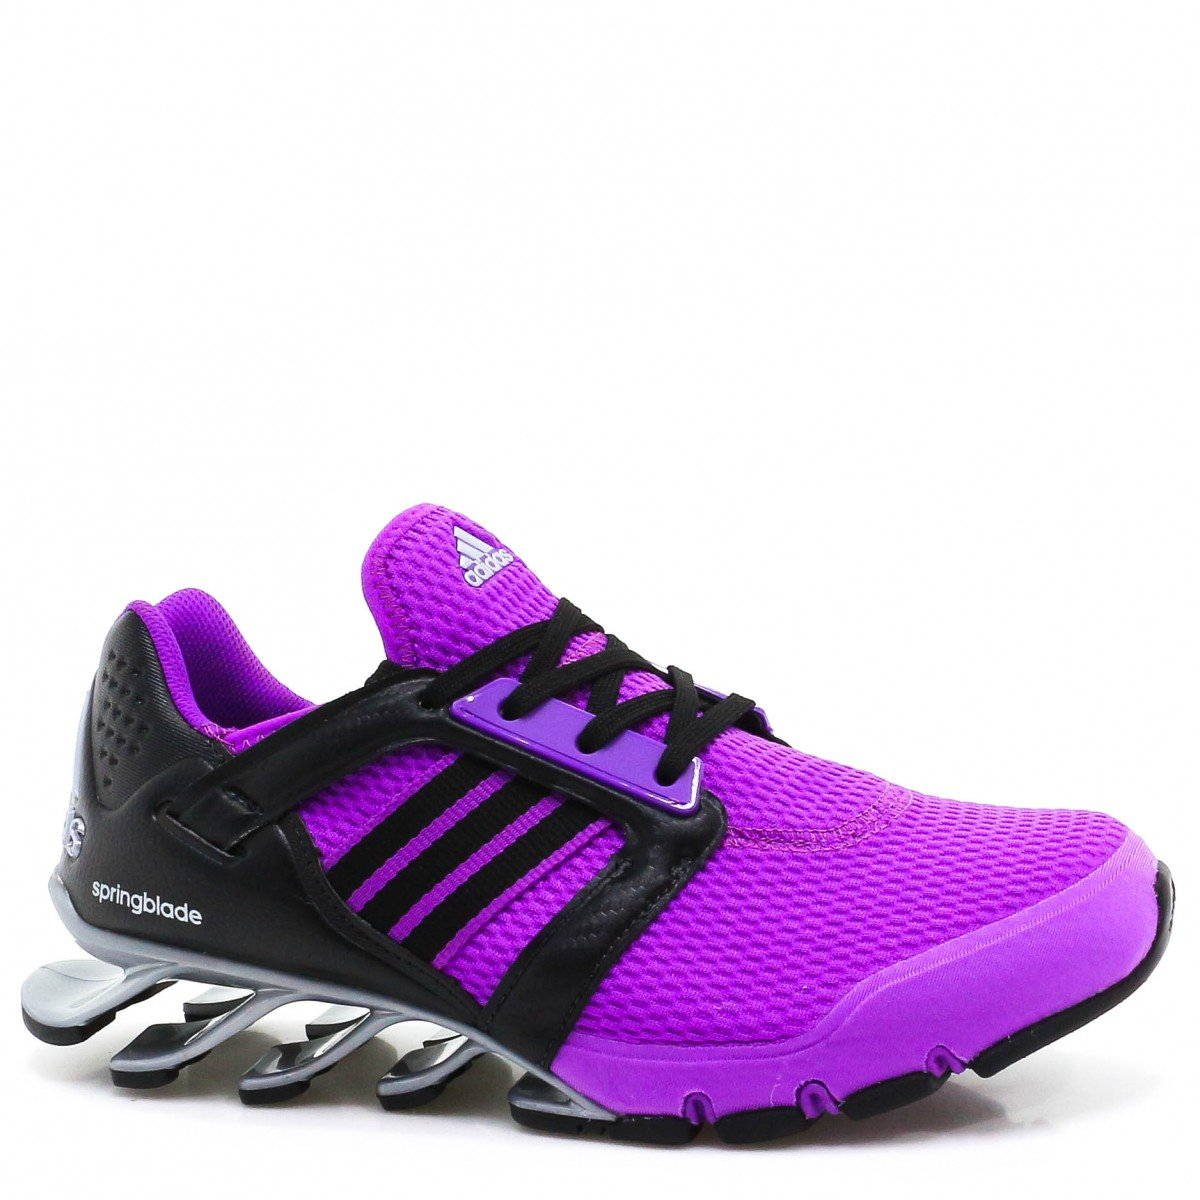 92bc857a0fea8 ... real tênis adidas springblade e force running 60702 4f6a5 ...